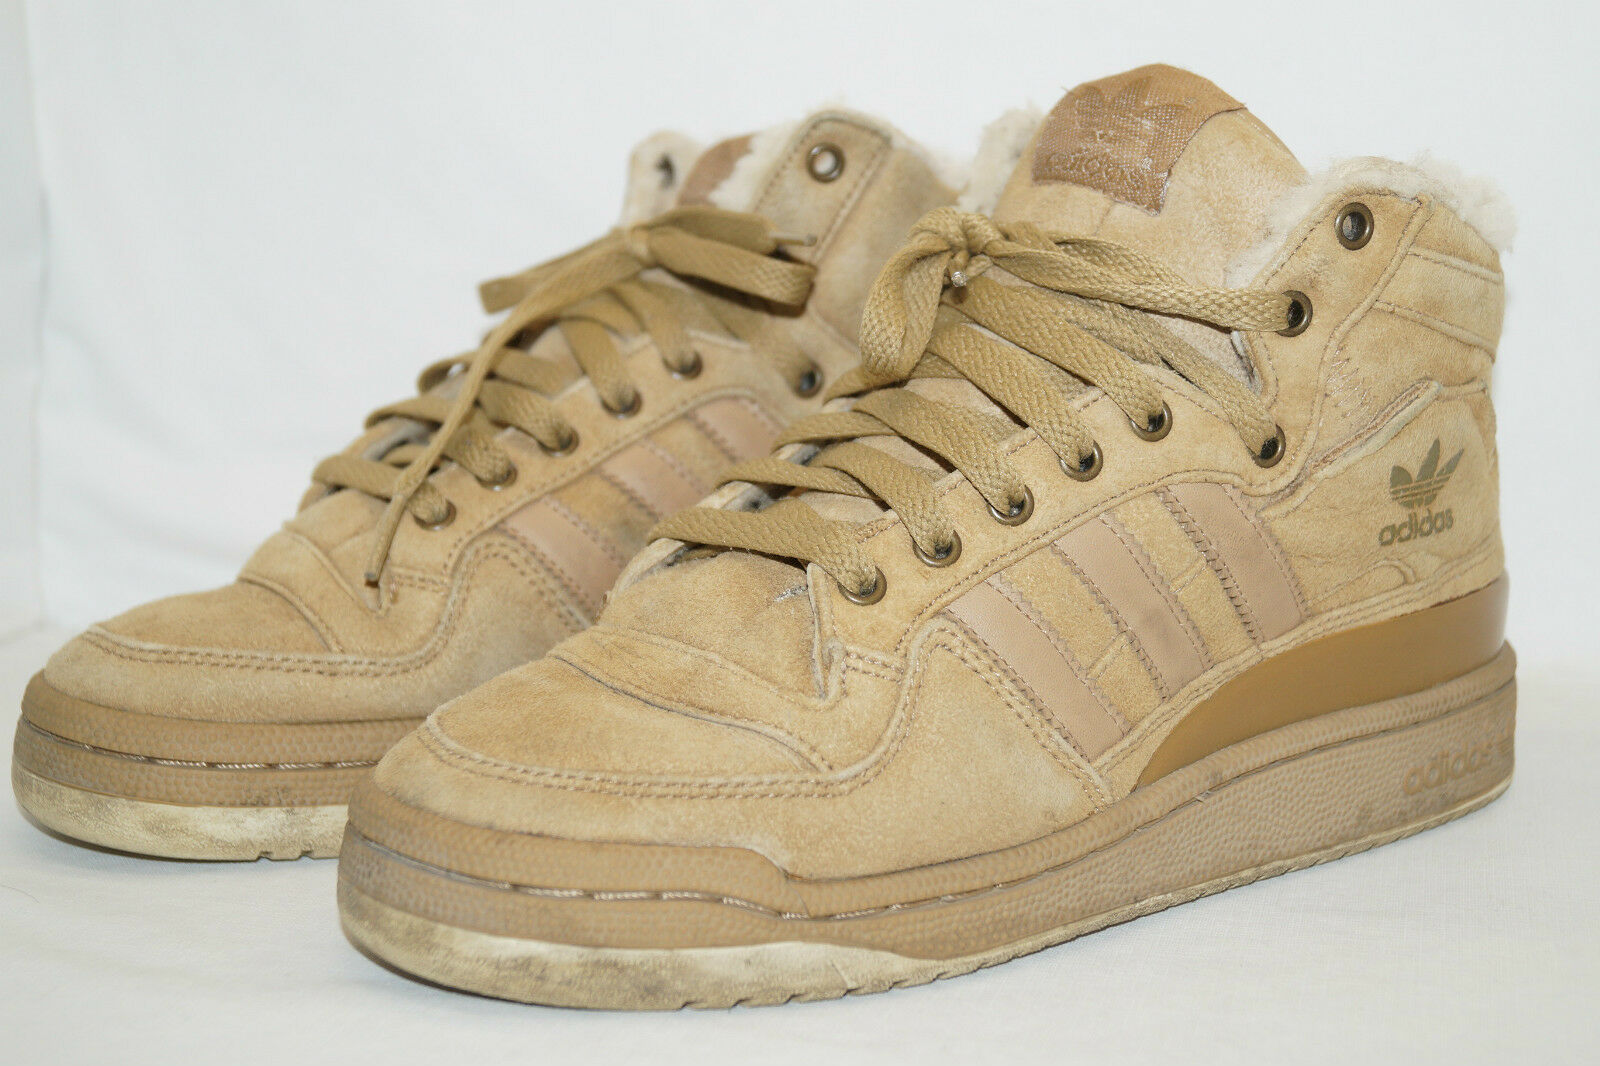 Adidas FORUM HI SH SHEEPSKIN lim 500 pcs 2004 2004 2004 547833 EU 39 1/3 UK 6 von 2004 a0a4bb